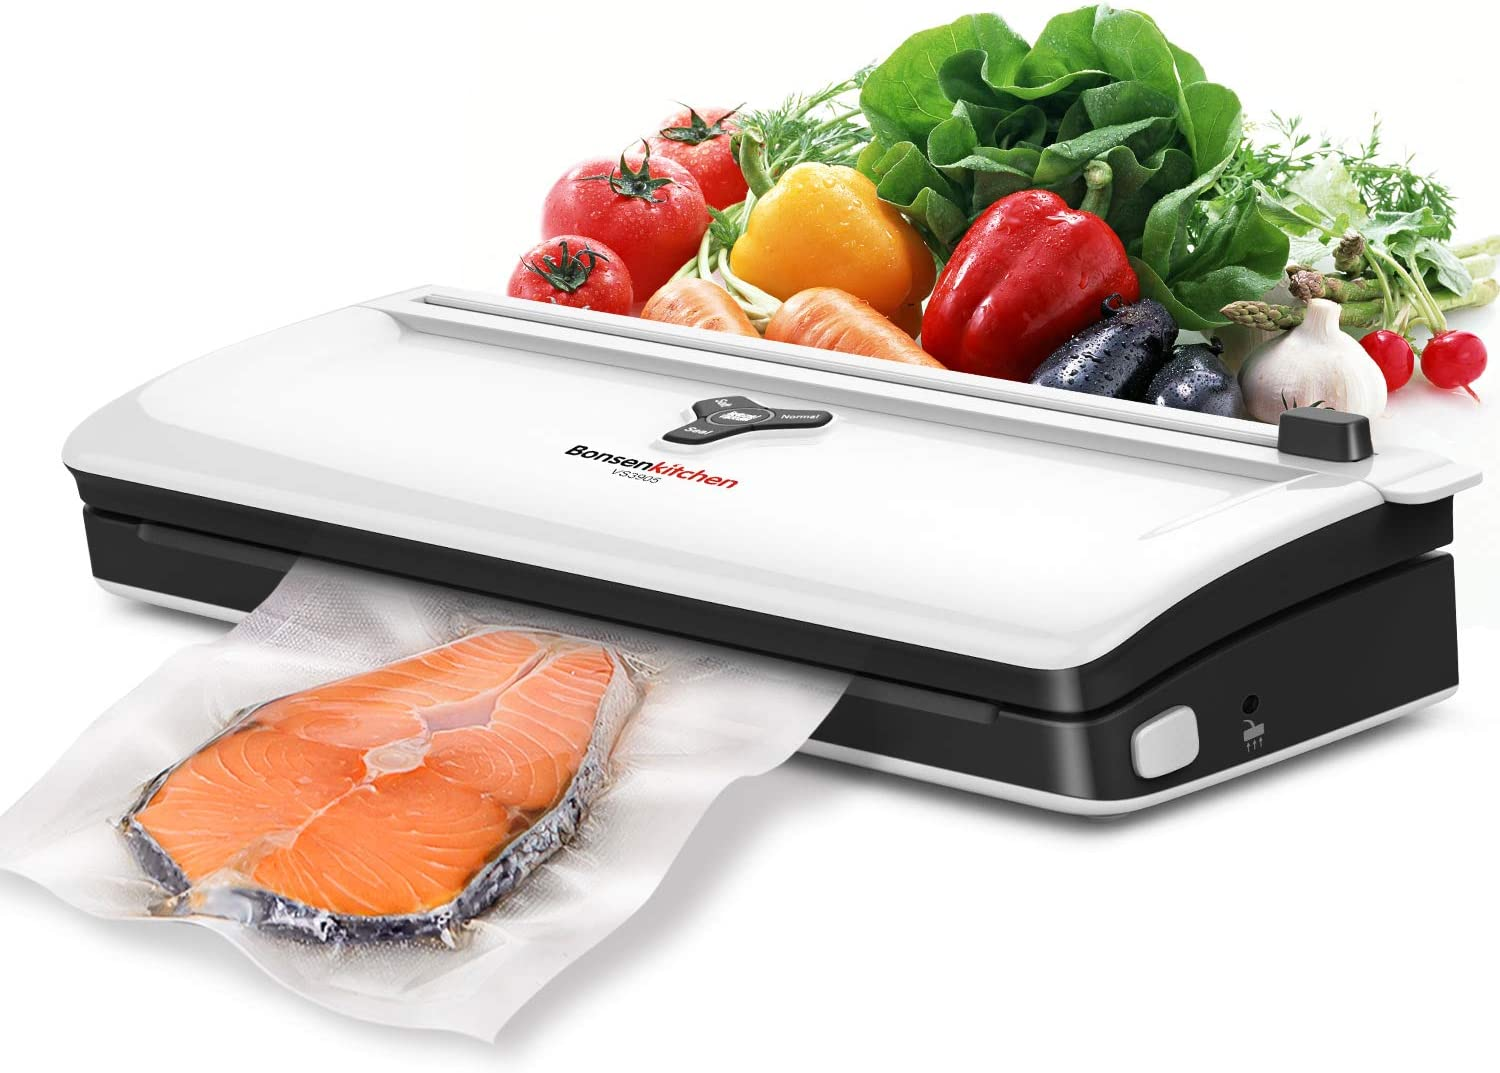 Food Saver Vacuum Sealer Machine For Food, Vaccume Sealer Machine Built in Air Sealing System with Vacuum Sealer Kits, Avoid Dehydration n Freezer Burn, Dry/Moist Model For Sous Vide